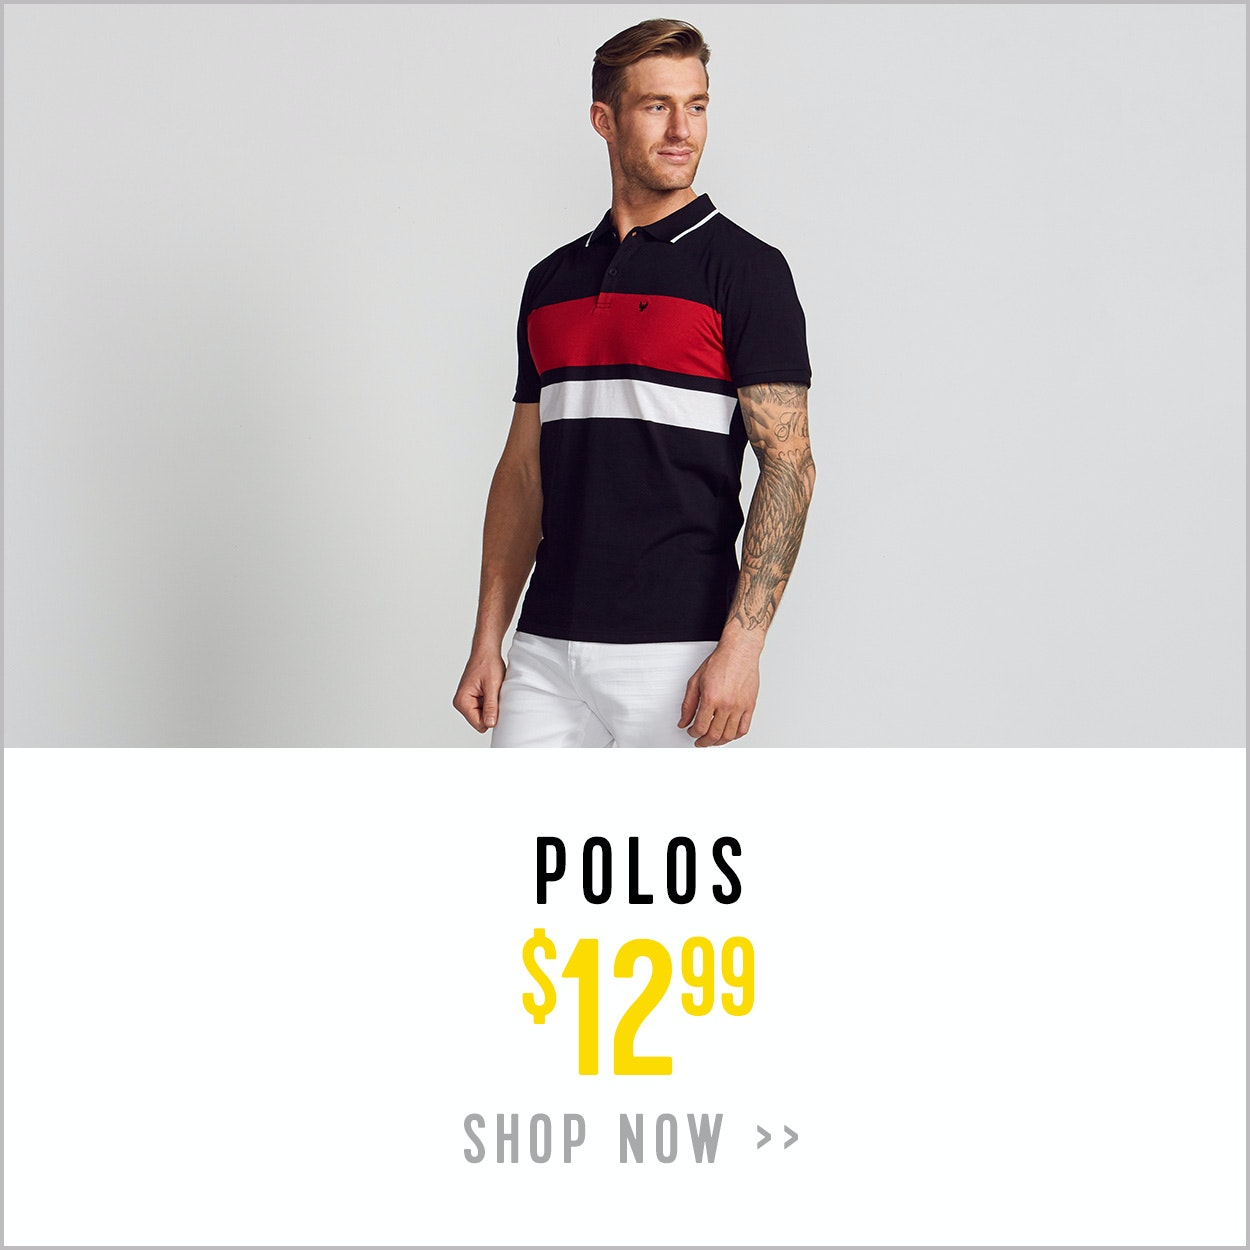 Polos - 2 for $12.99